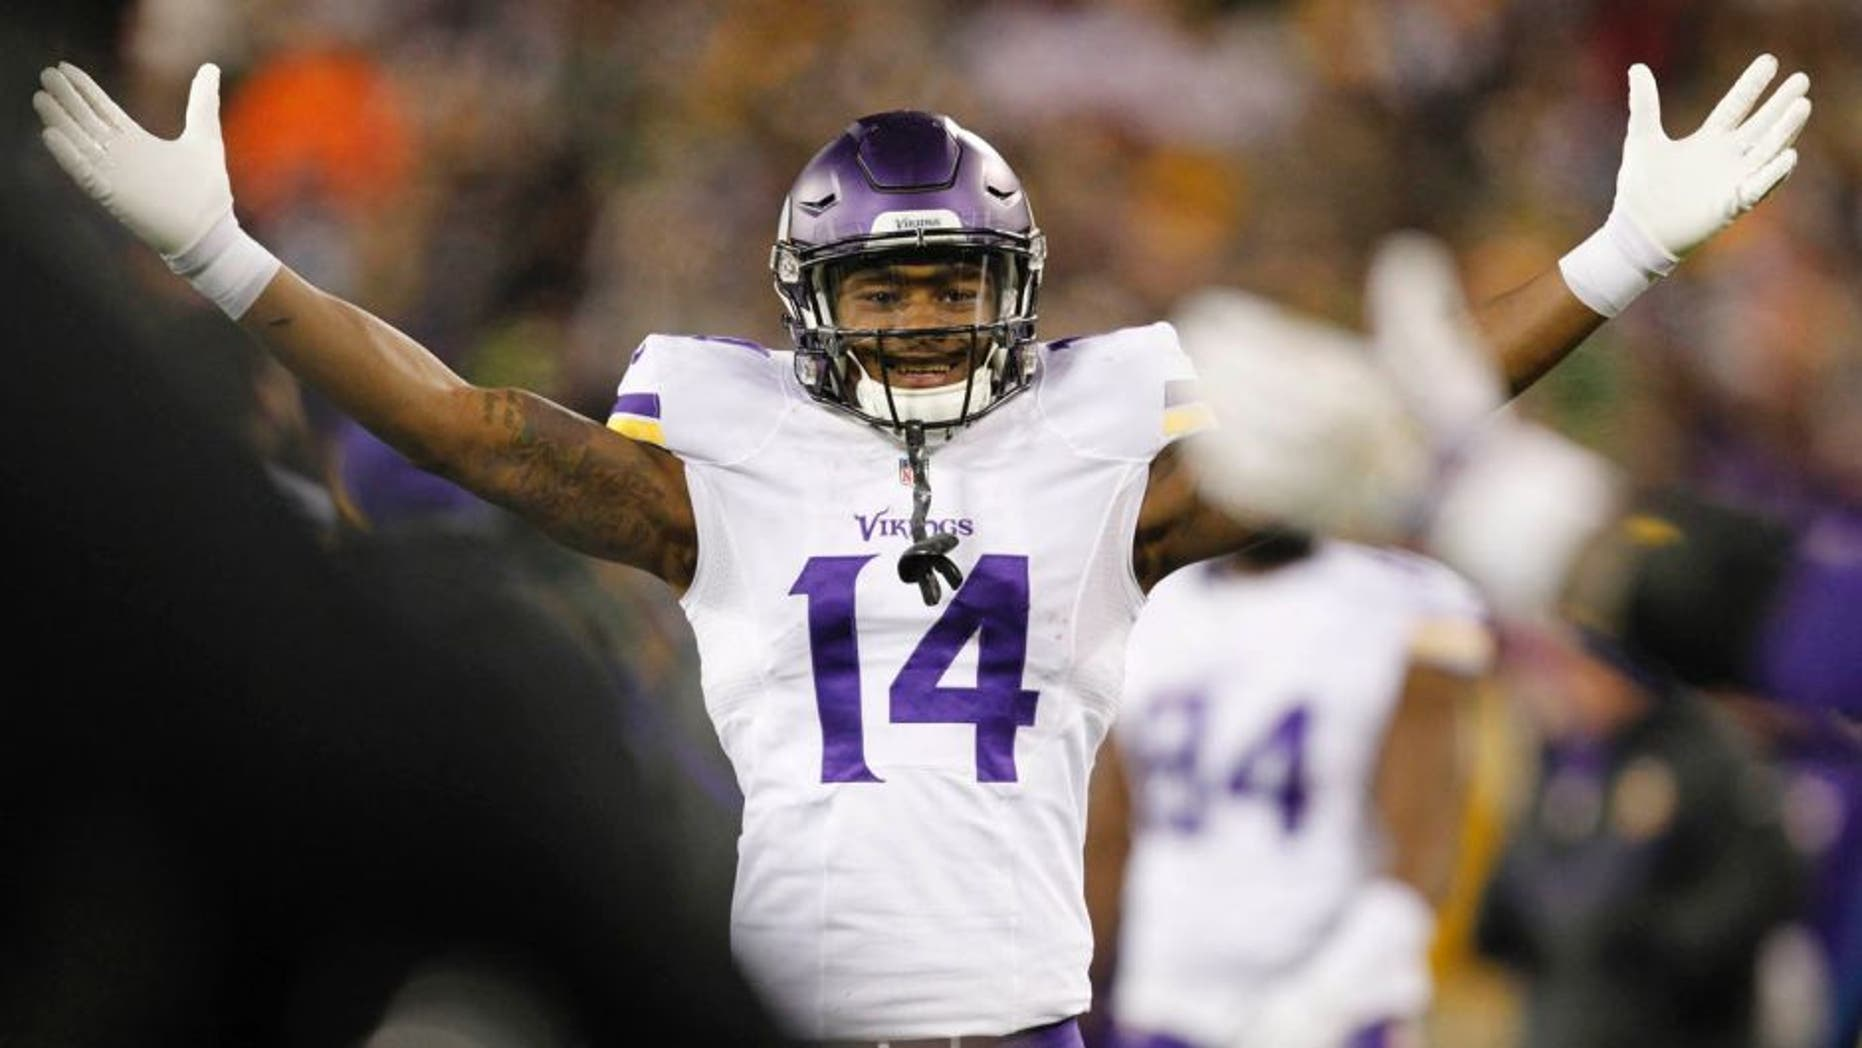 The Minnesota Vikings' Stefon Diggs celebrates during the second half against the Green Bay Packers on Sunday, Jan. 3, 2016, in Green Bay, Wis.